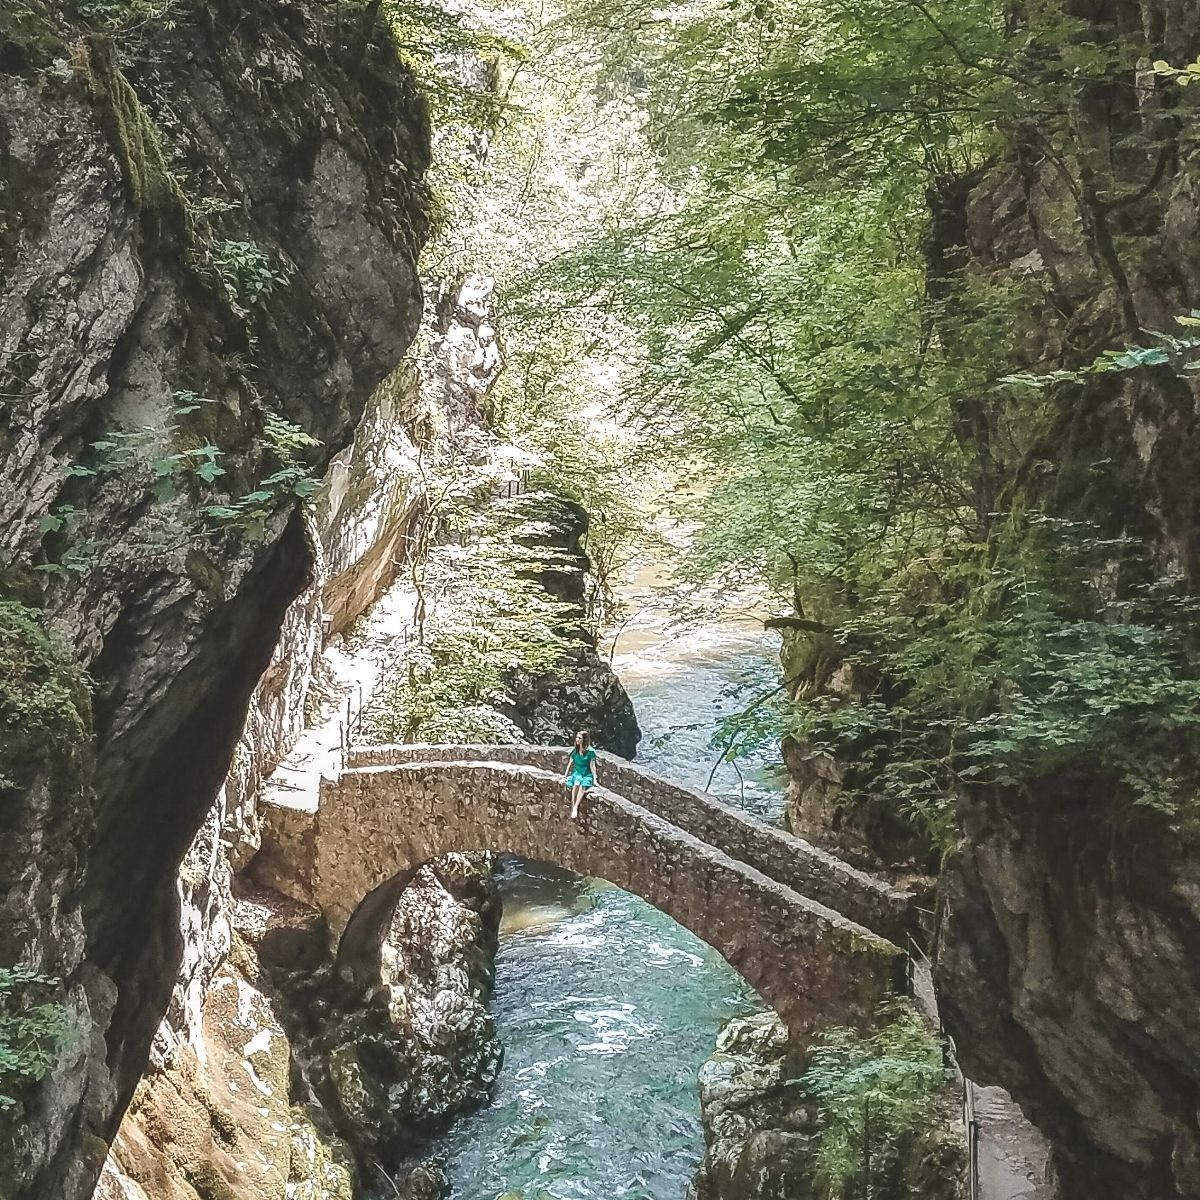 aug 9 11 of the most beautiful places in switzerland | europe